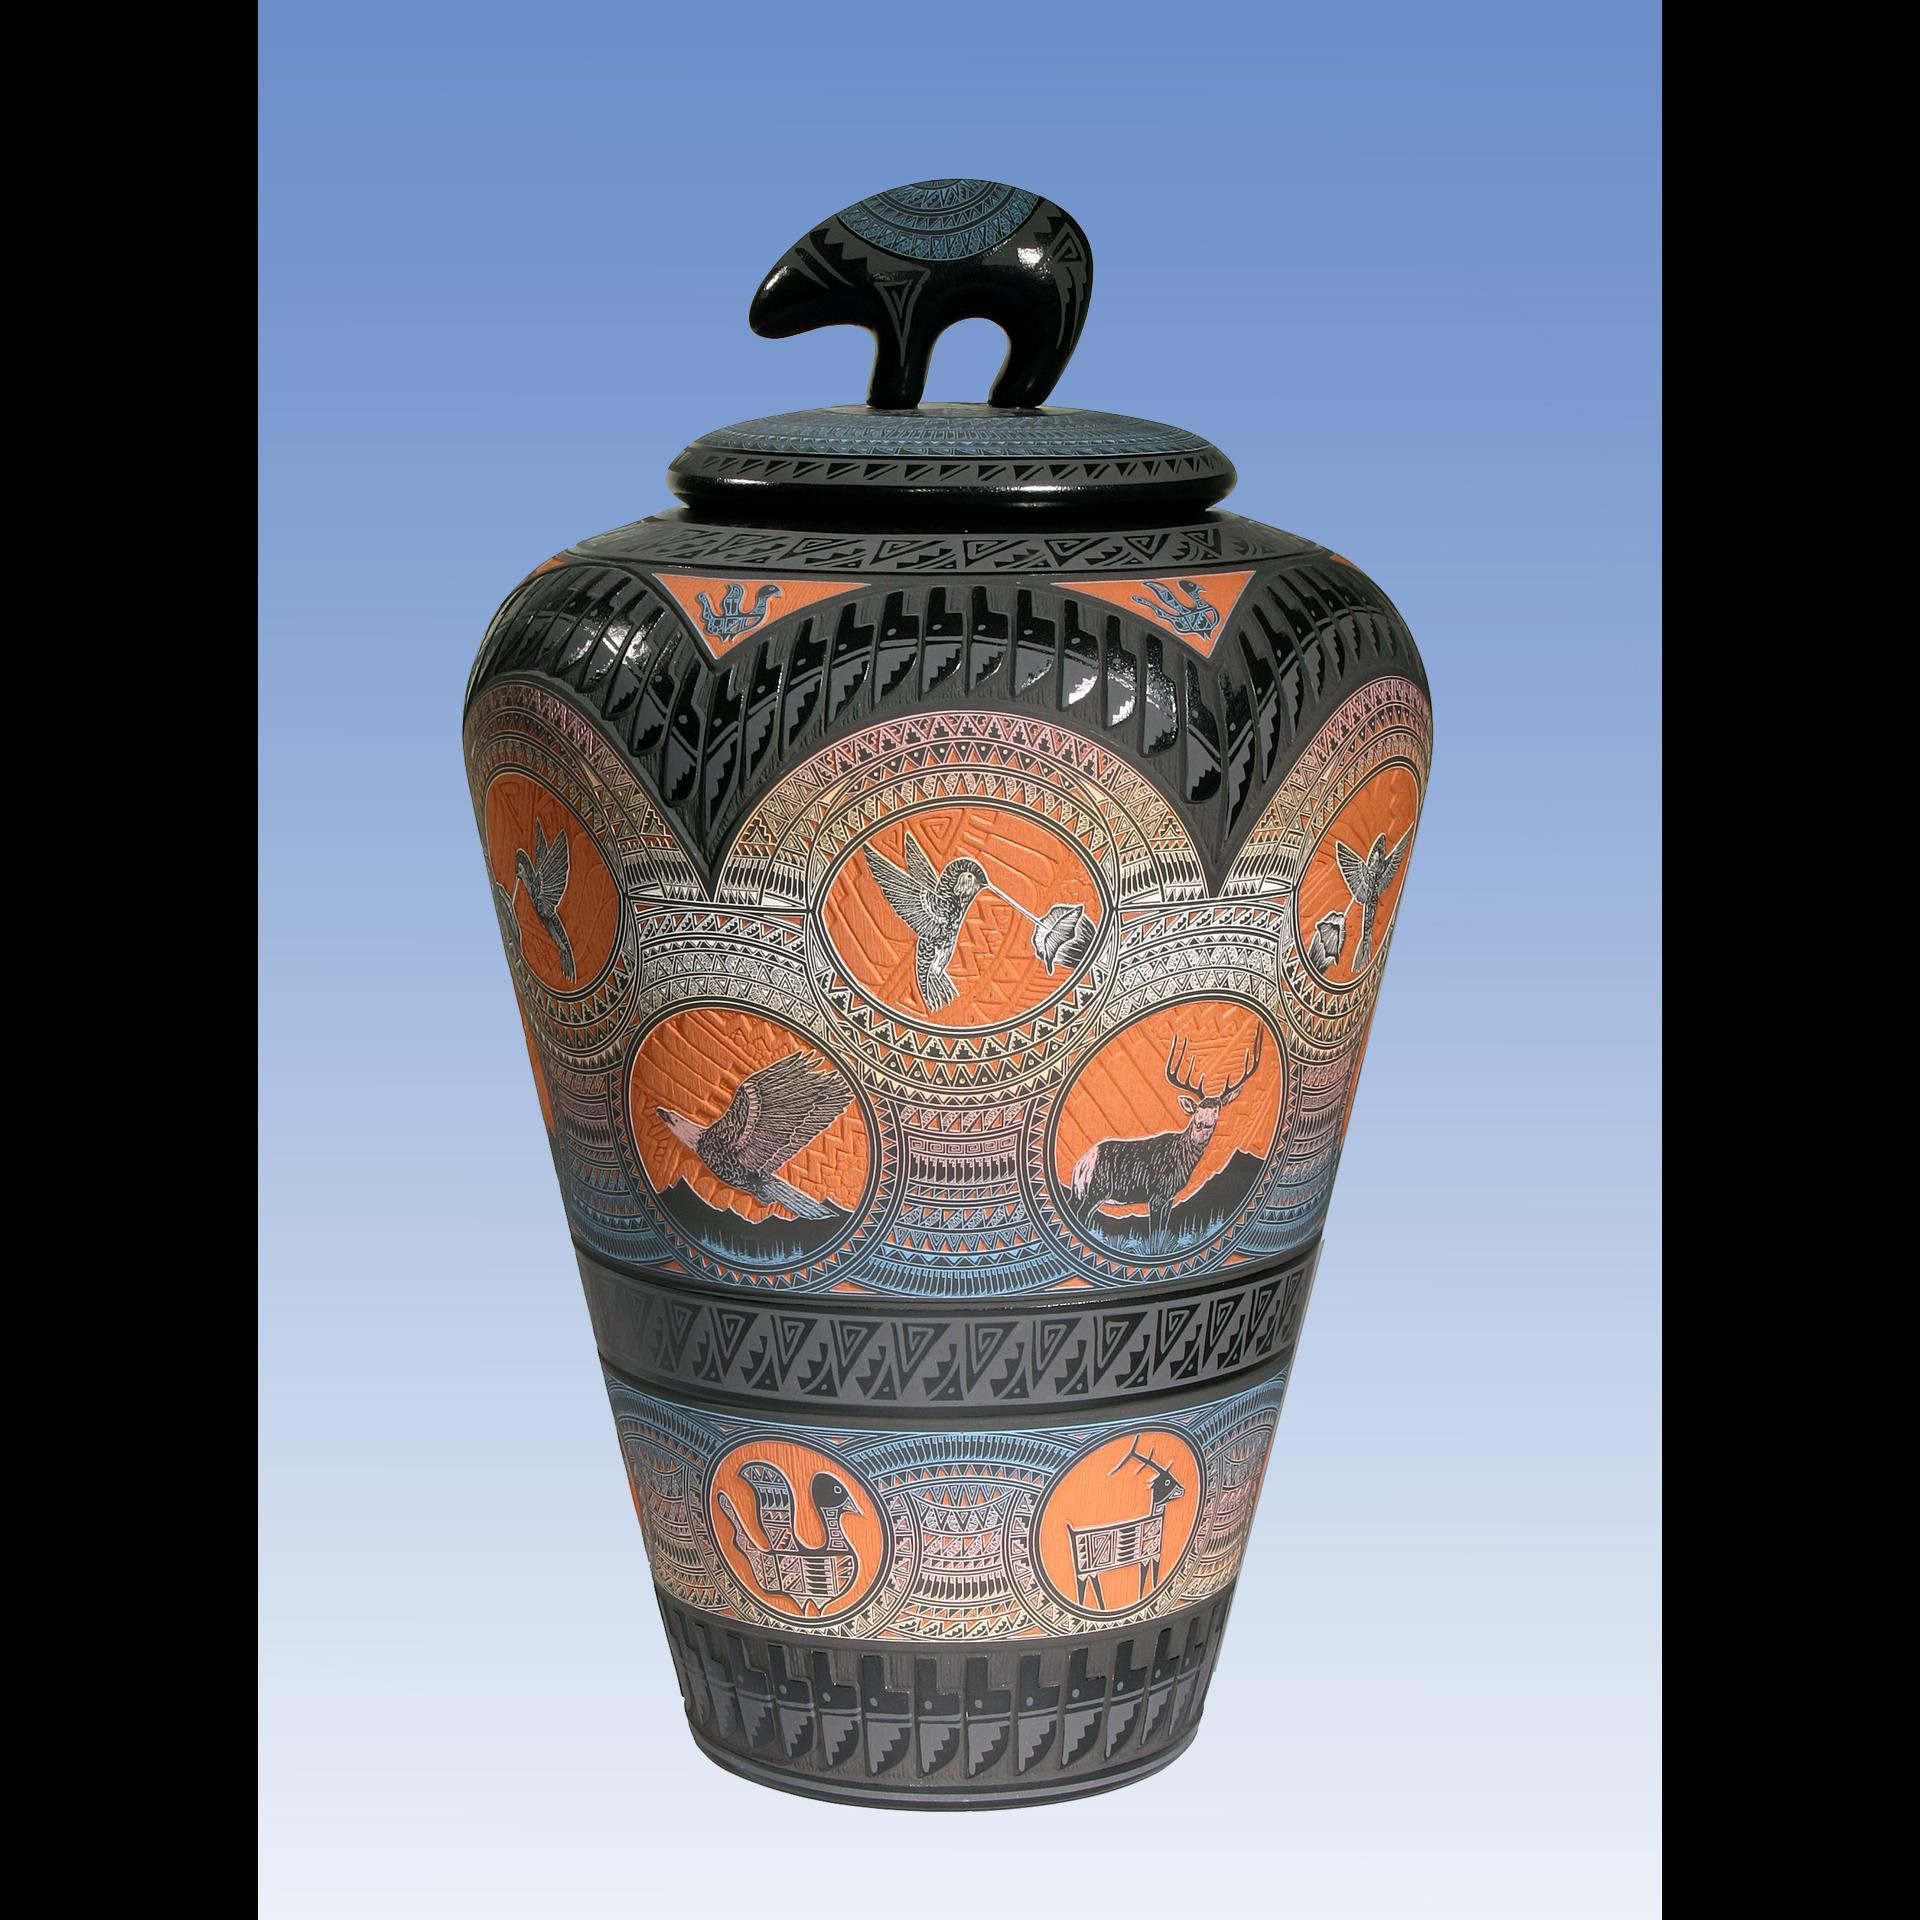 navajo horsehair pottery wedding vase of marvin blackmore durango co http www blackmorepottery org throughout marvin blackmore hand etched pottery native american ceramics bear